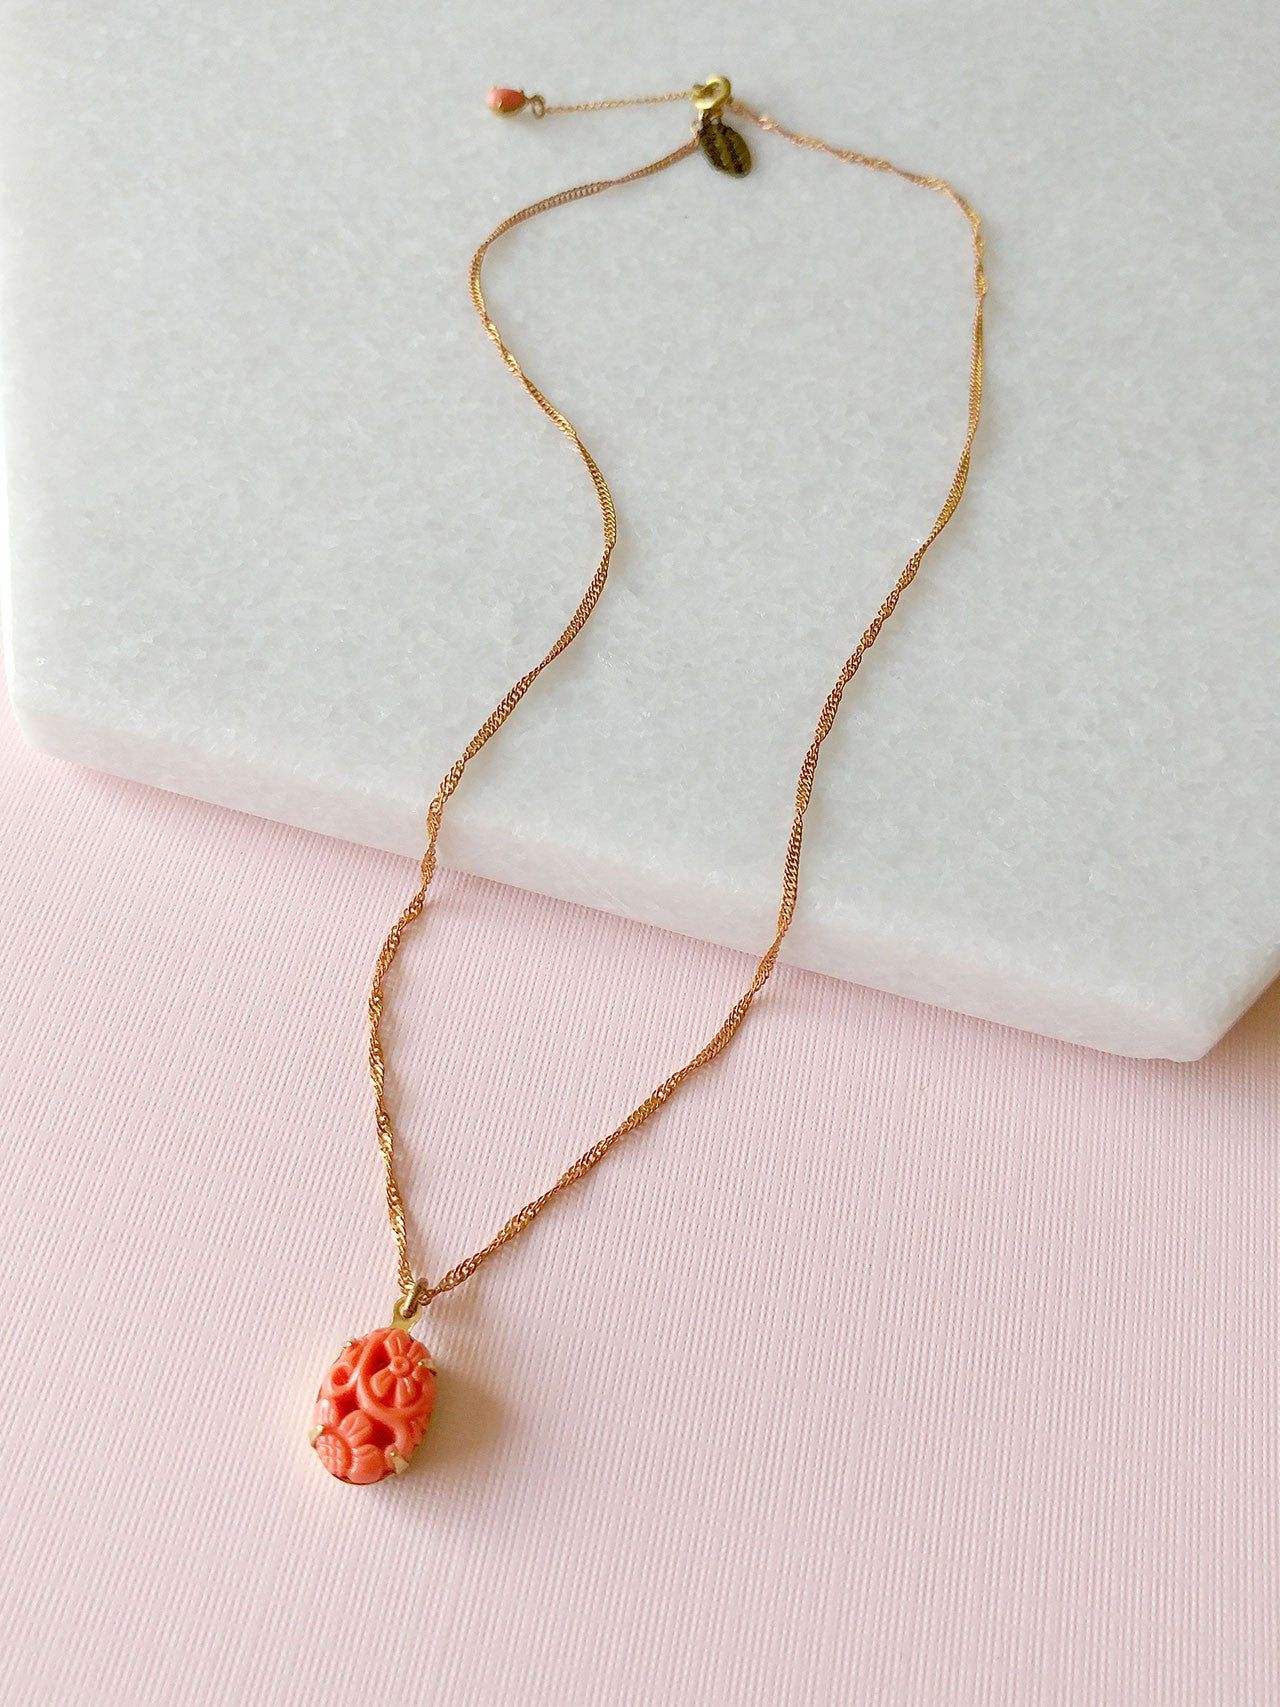 coral charm necklace